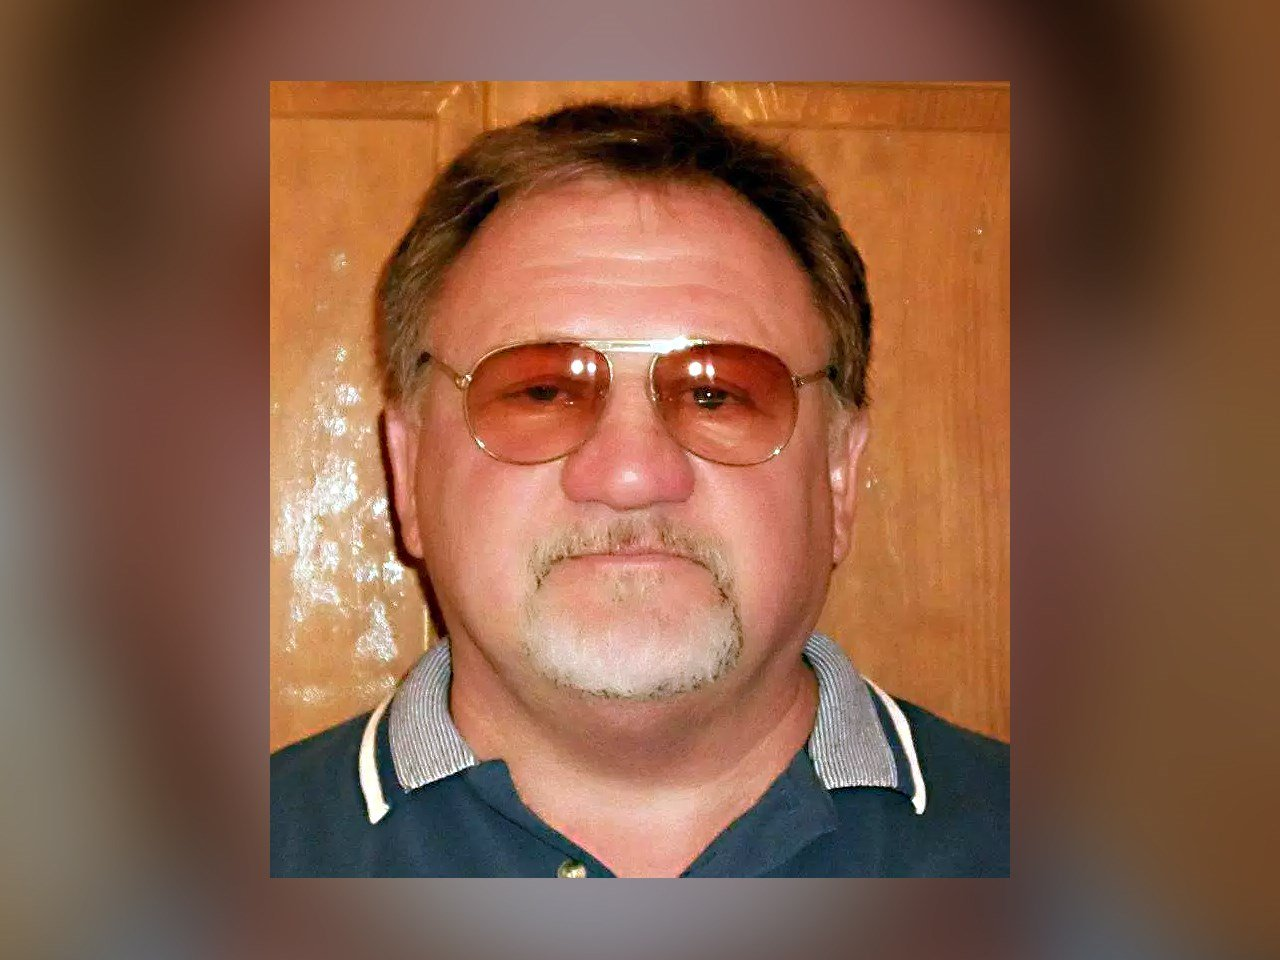 Hodgkinson launched into anti-Trump tirade before Scalise shooting